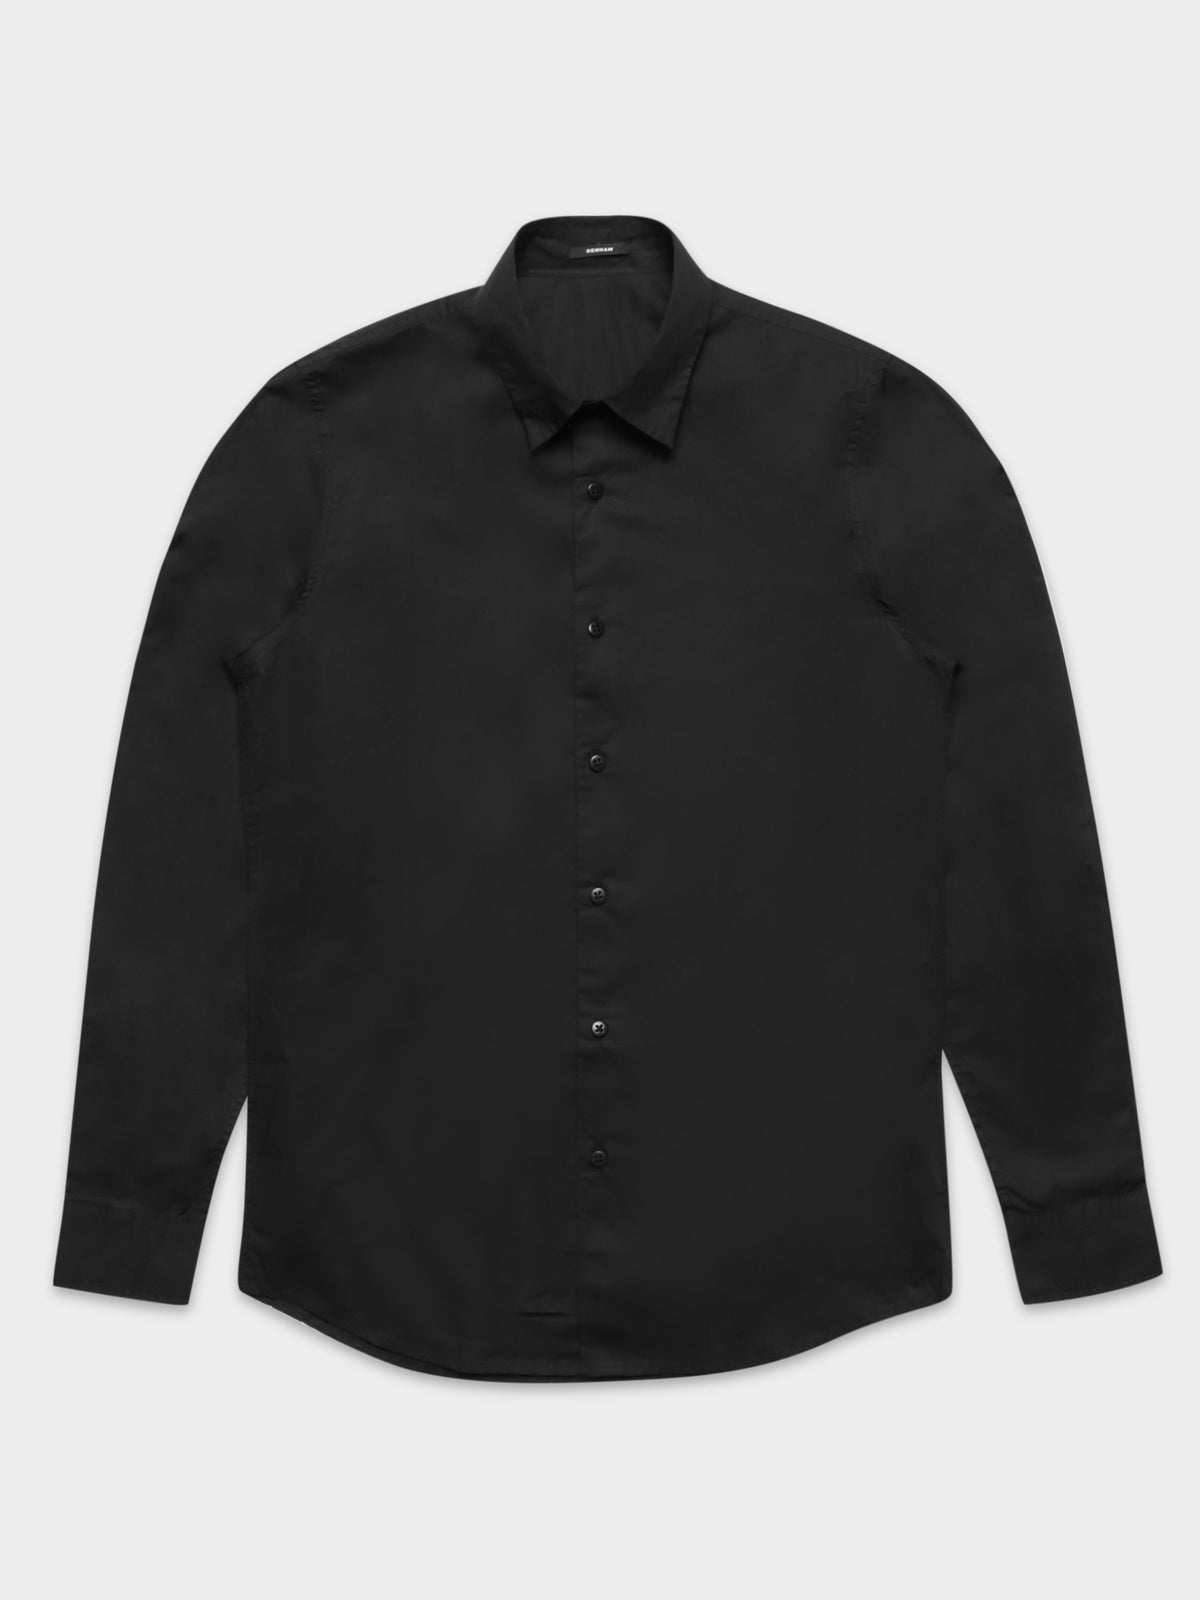 Pack Shirt in Cinder Black